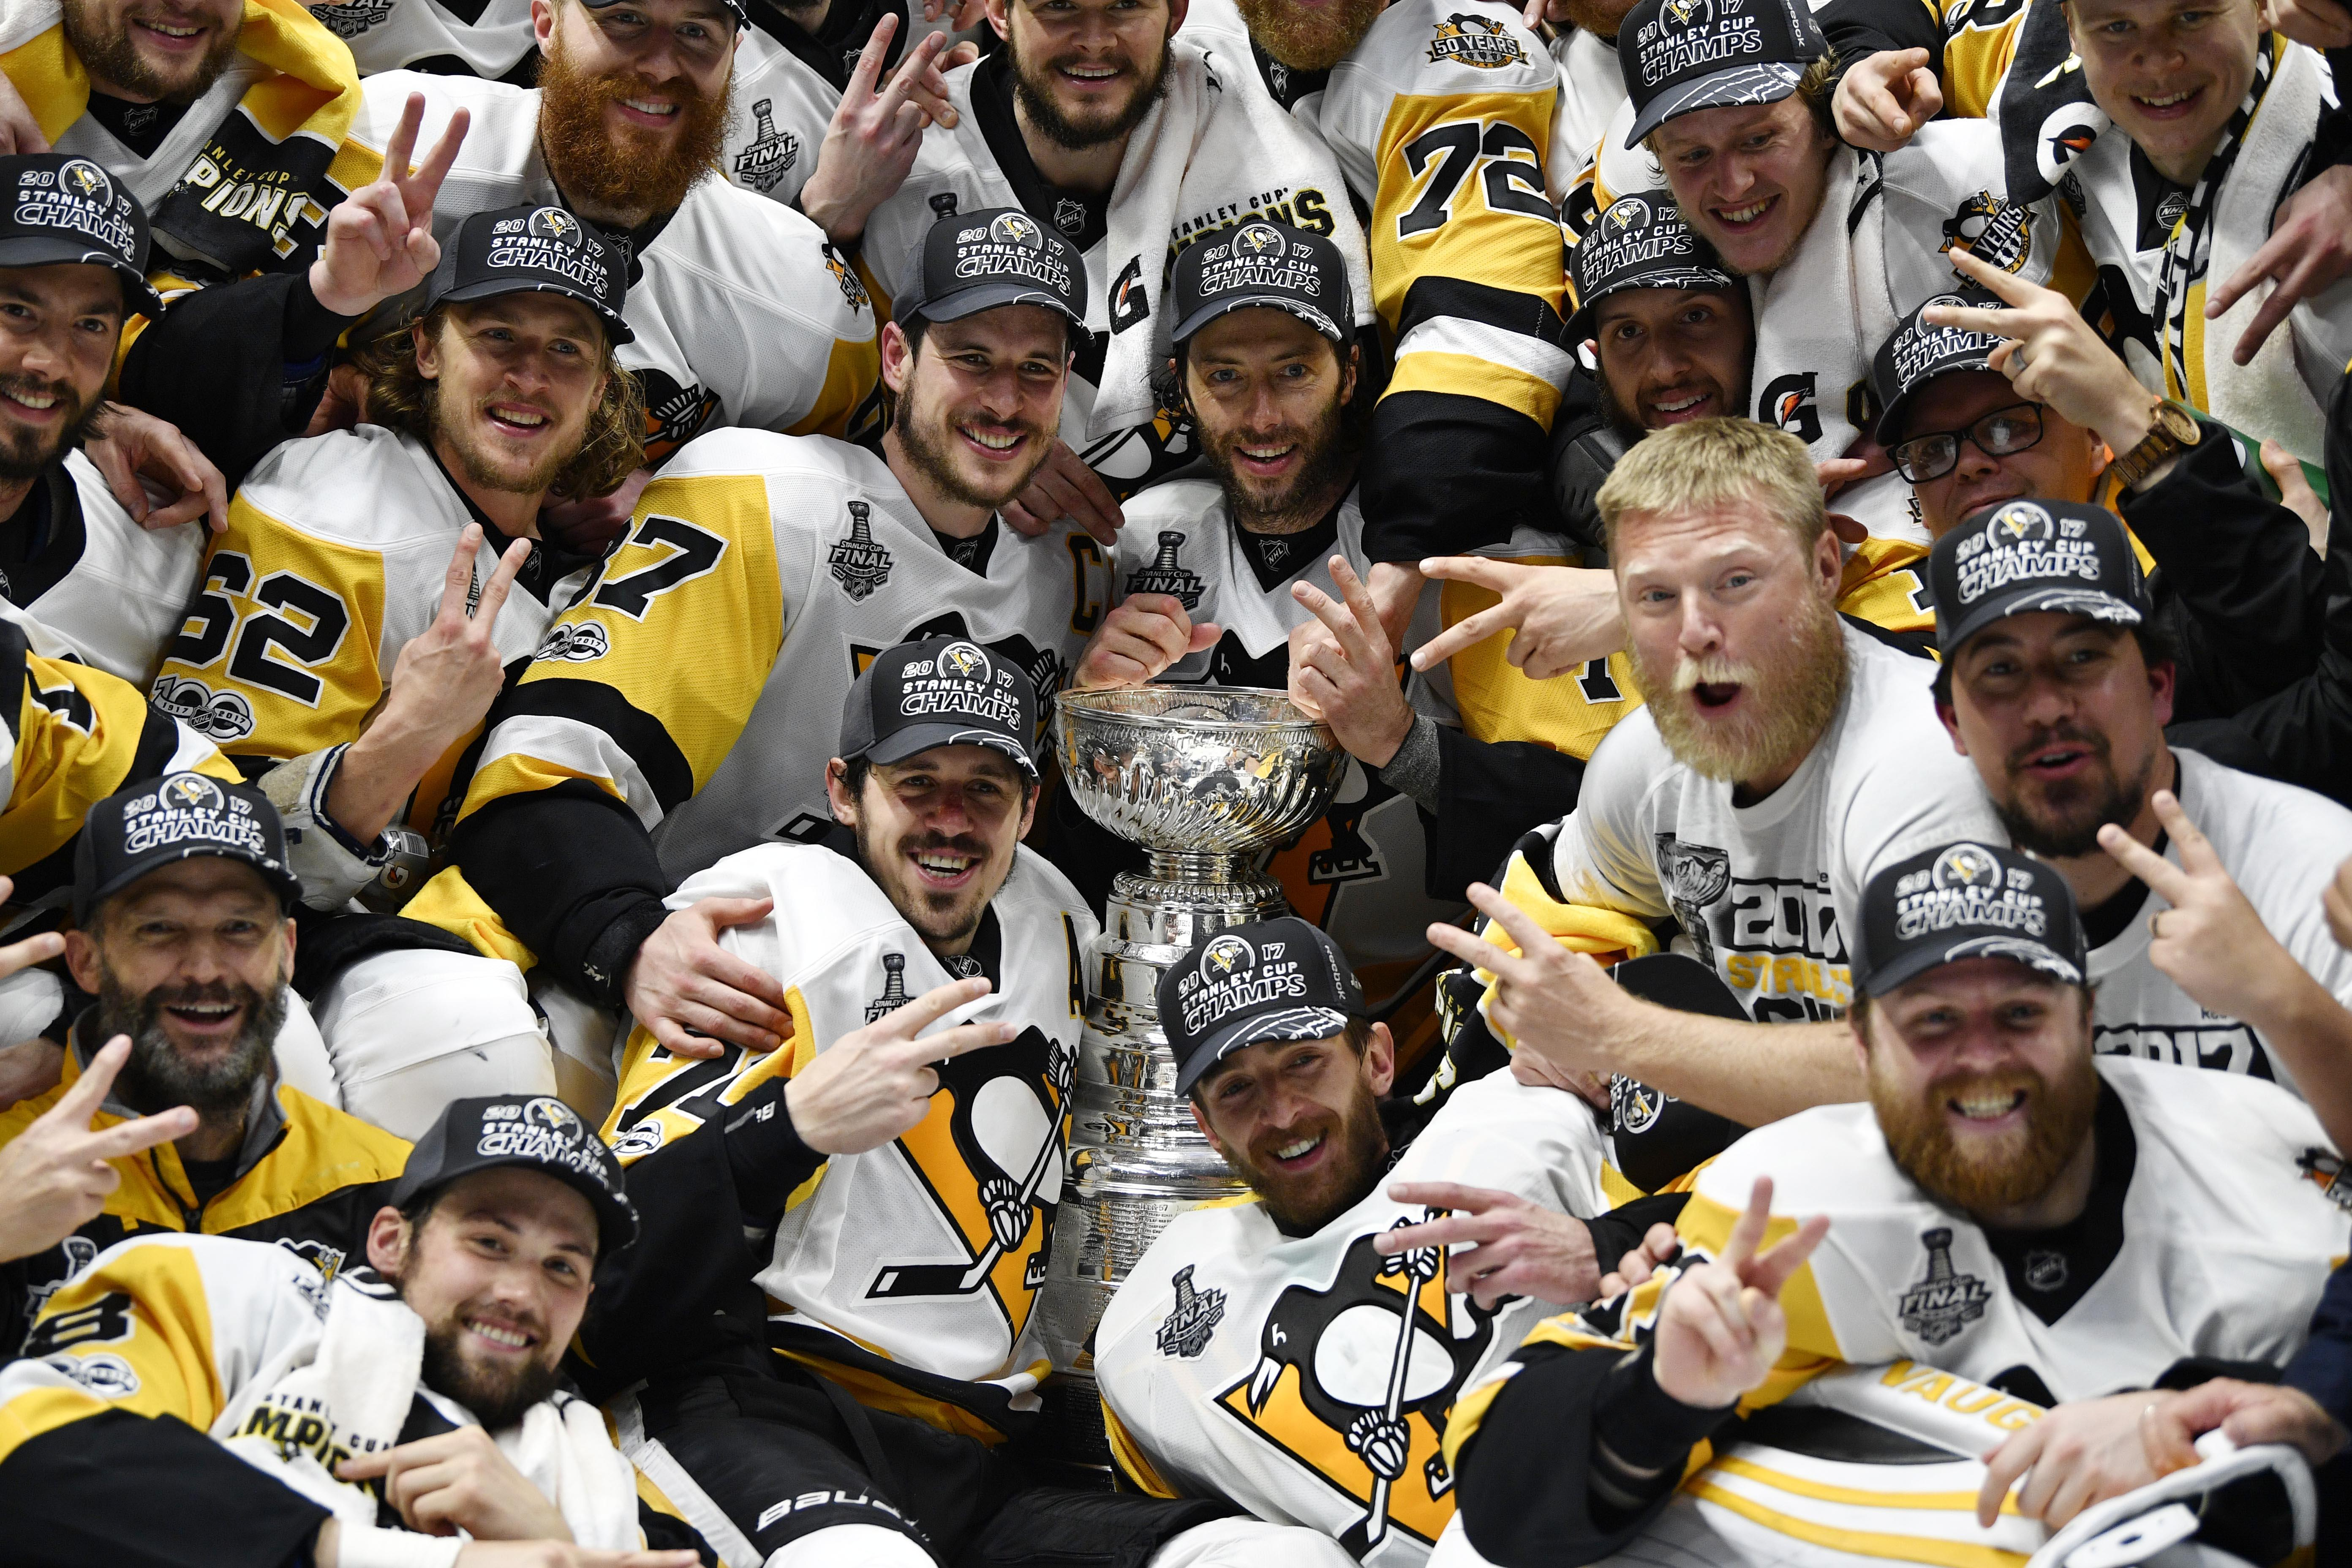 Pittsburgh Penguins win 2nd straight Stanley Cup title with 2-0 win over Nashville  Preds b55dd6b89